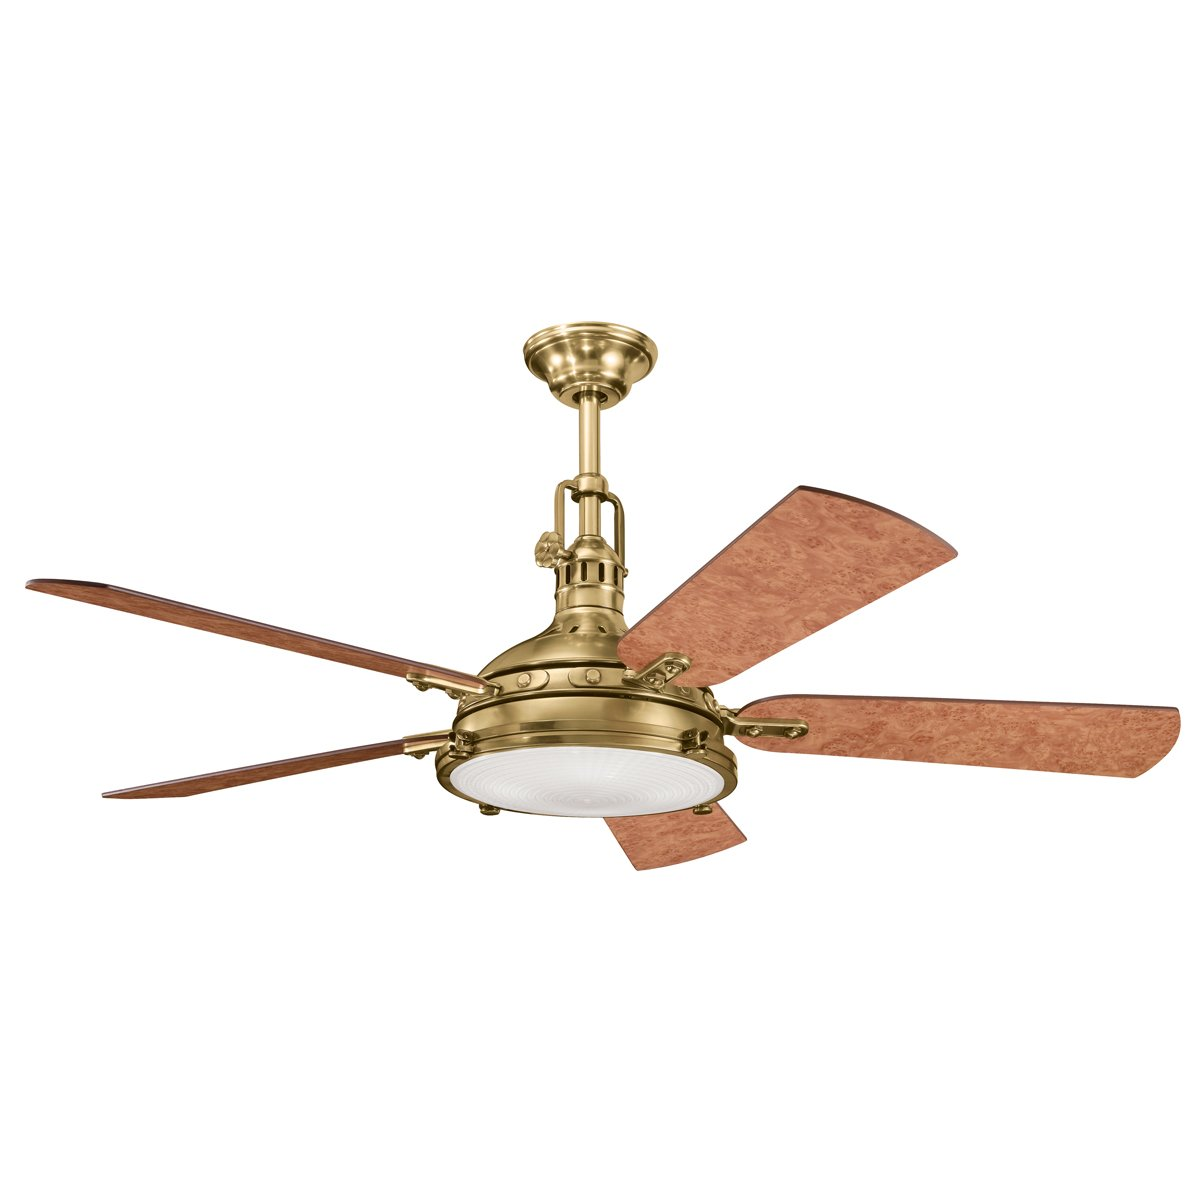 fans ceiling blade blades products carlo monte ceilings fan steel included discus homeclick kit light stainless with